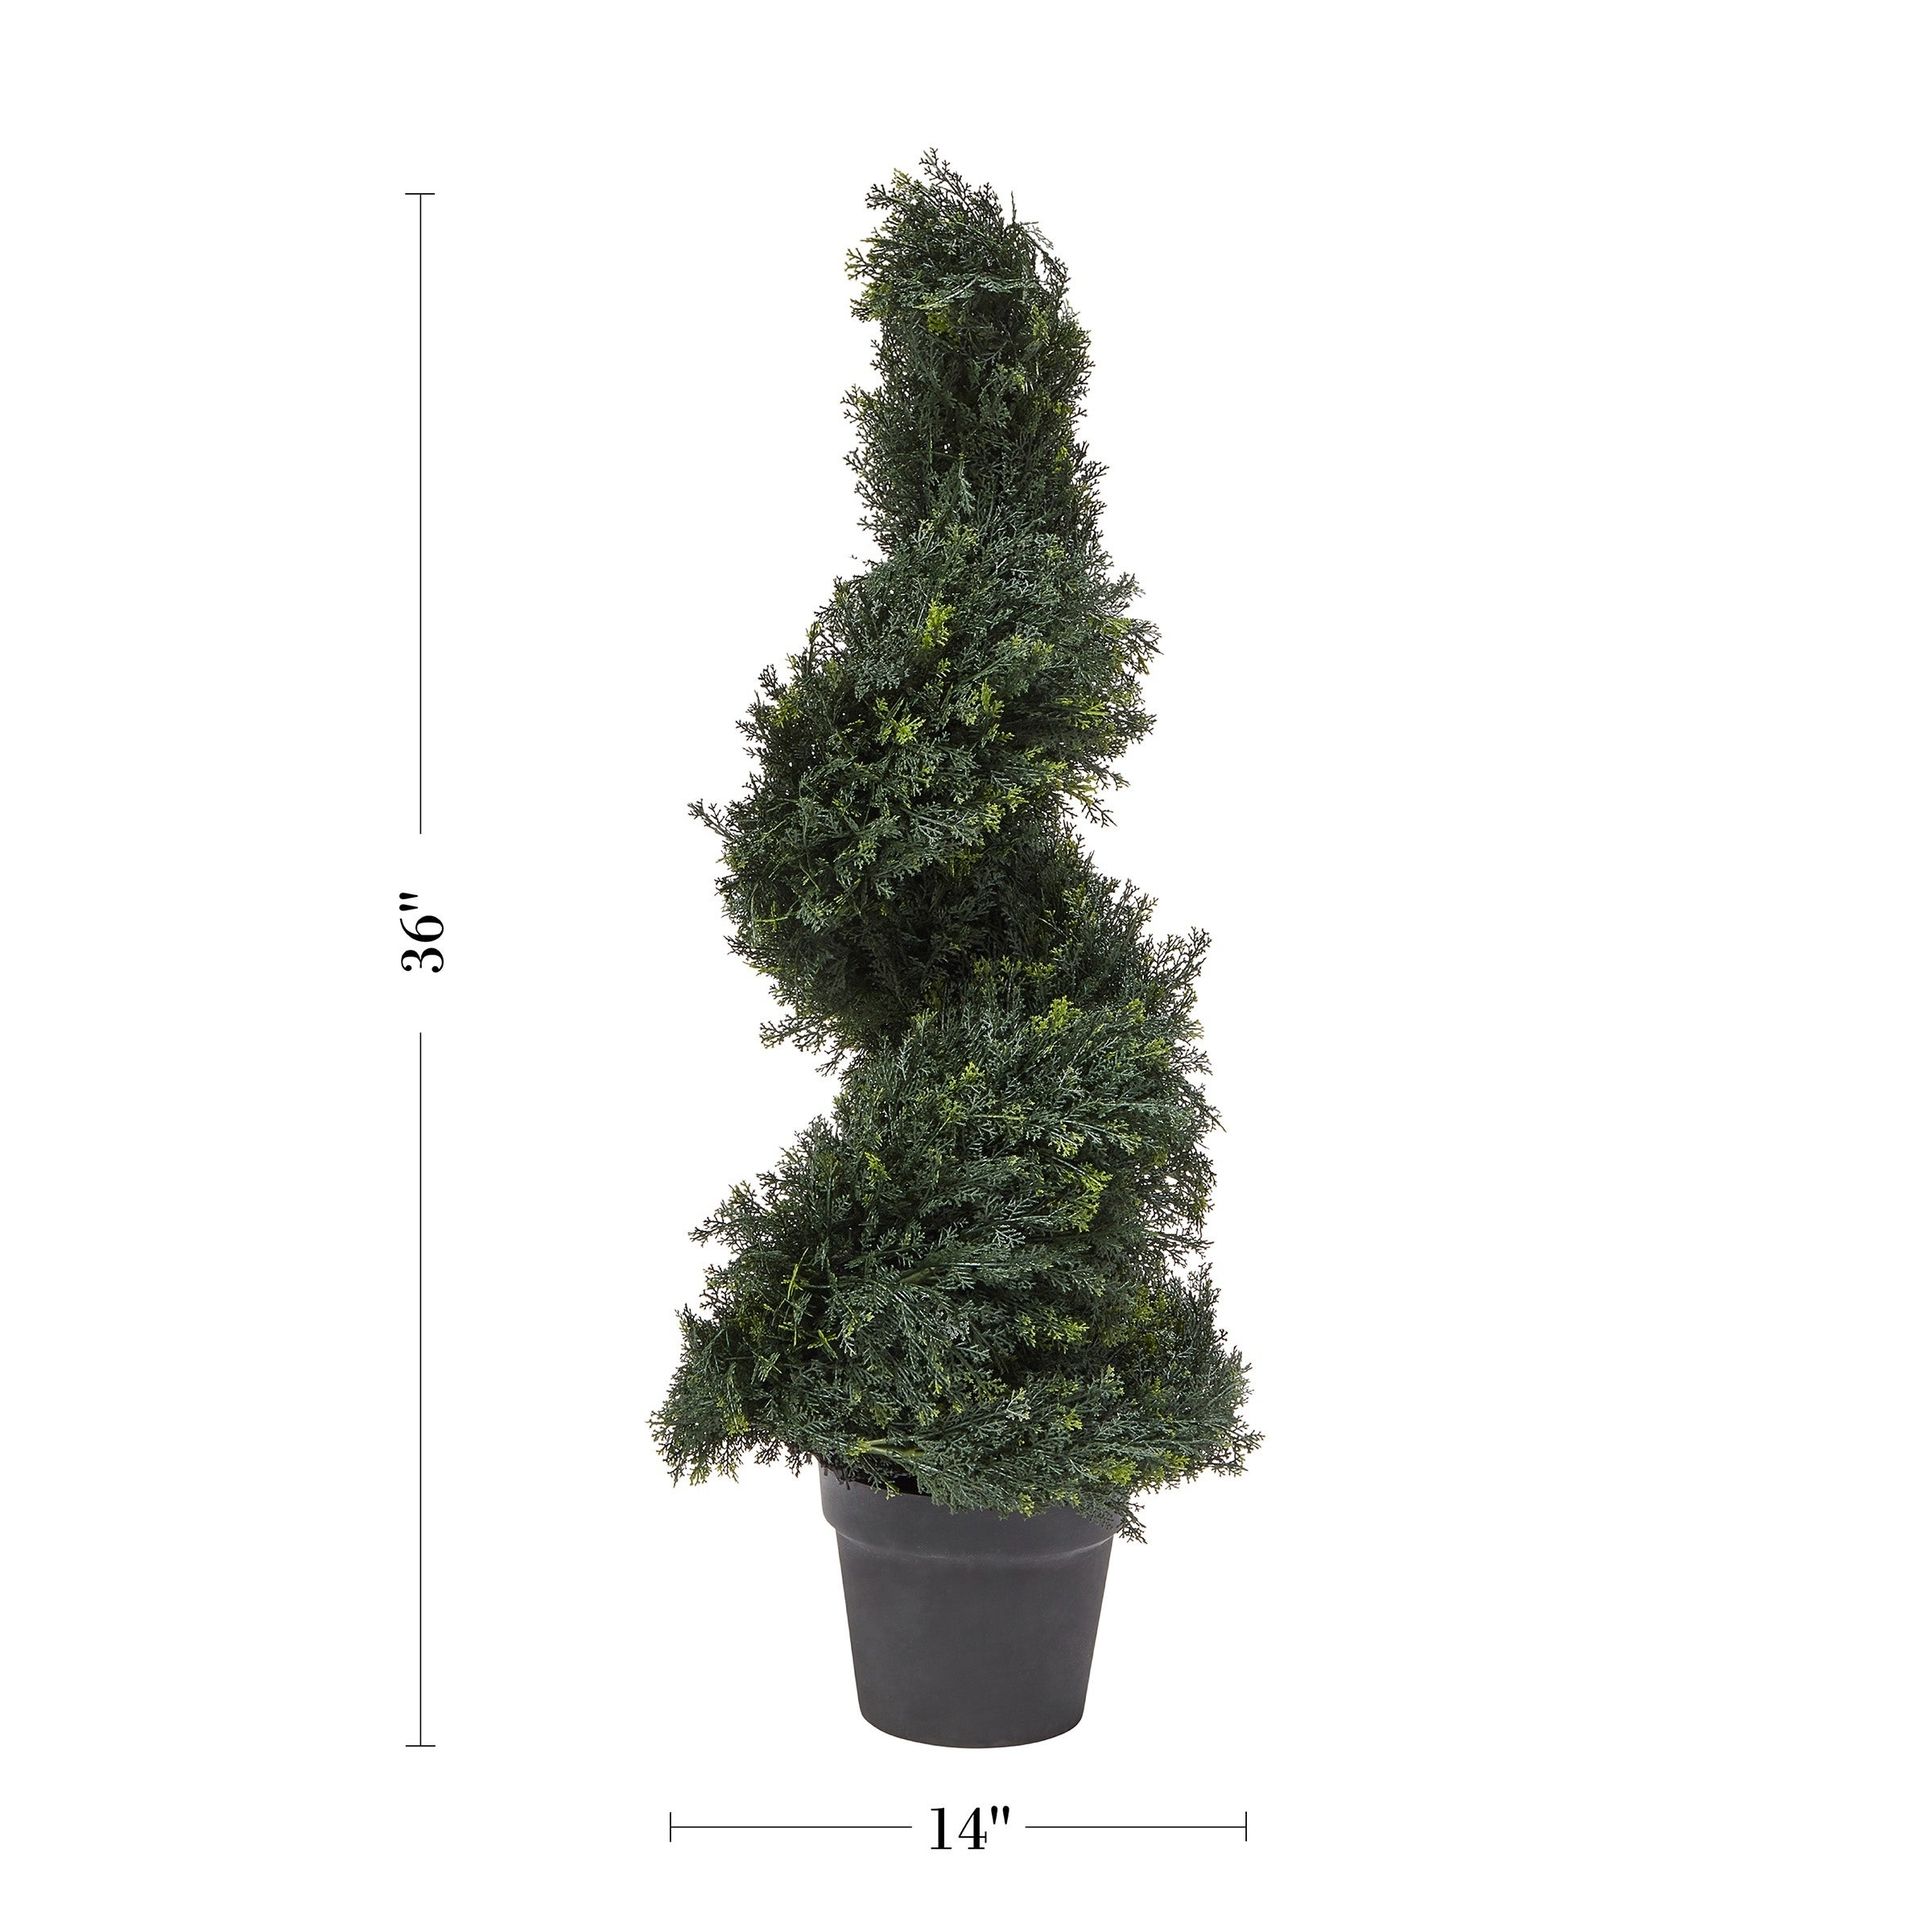 Pure Garden 3 Foot Tall Indoor Outdoor Potted Artificial Cypress Spiral Topiary Tree Overstock 27742911